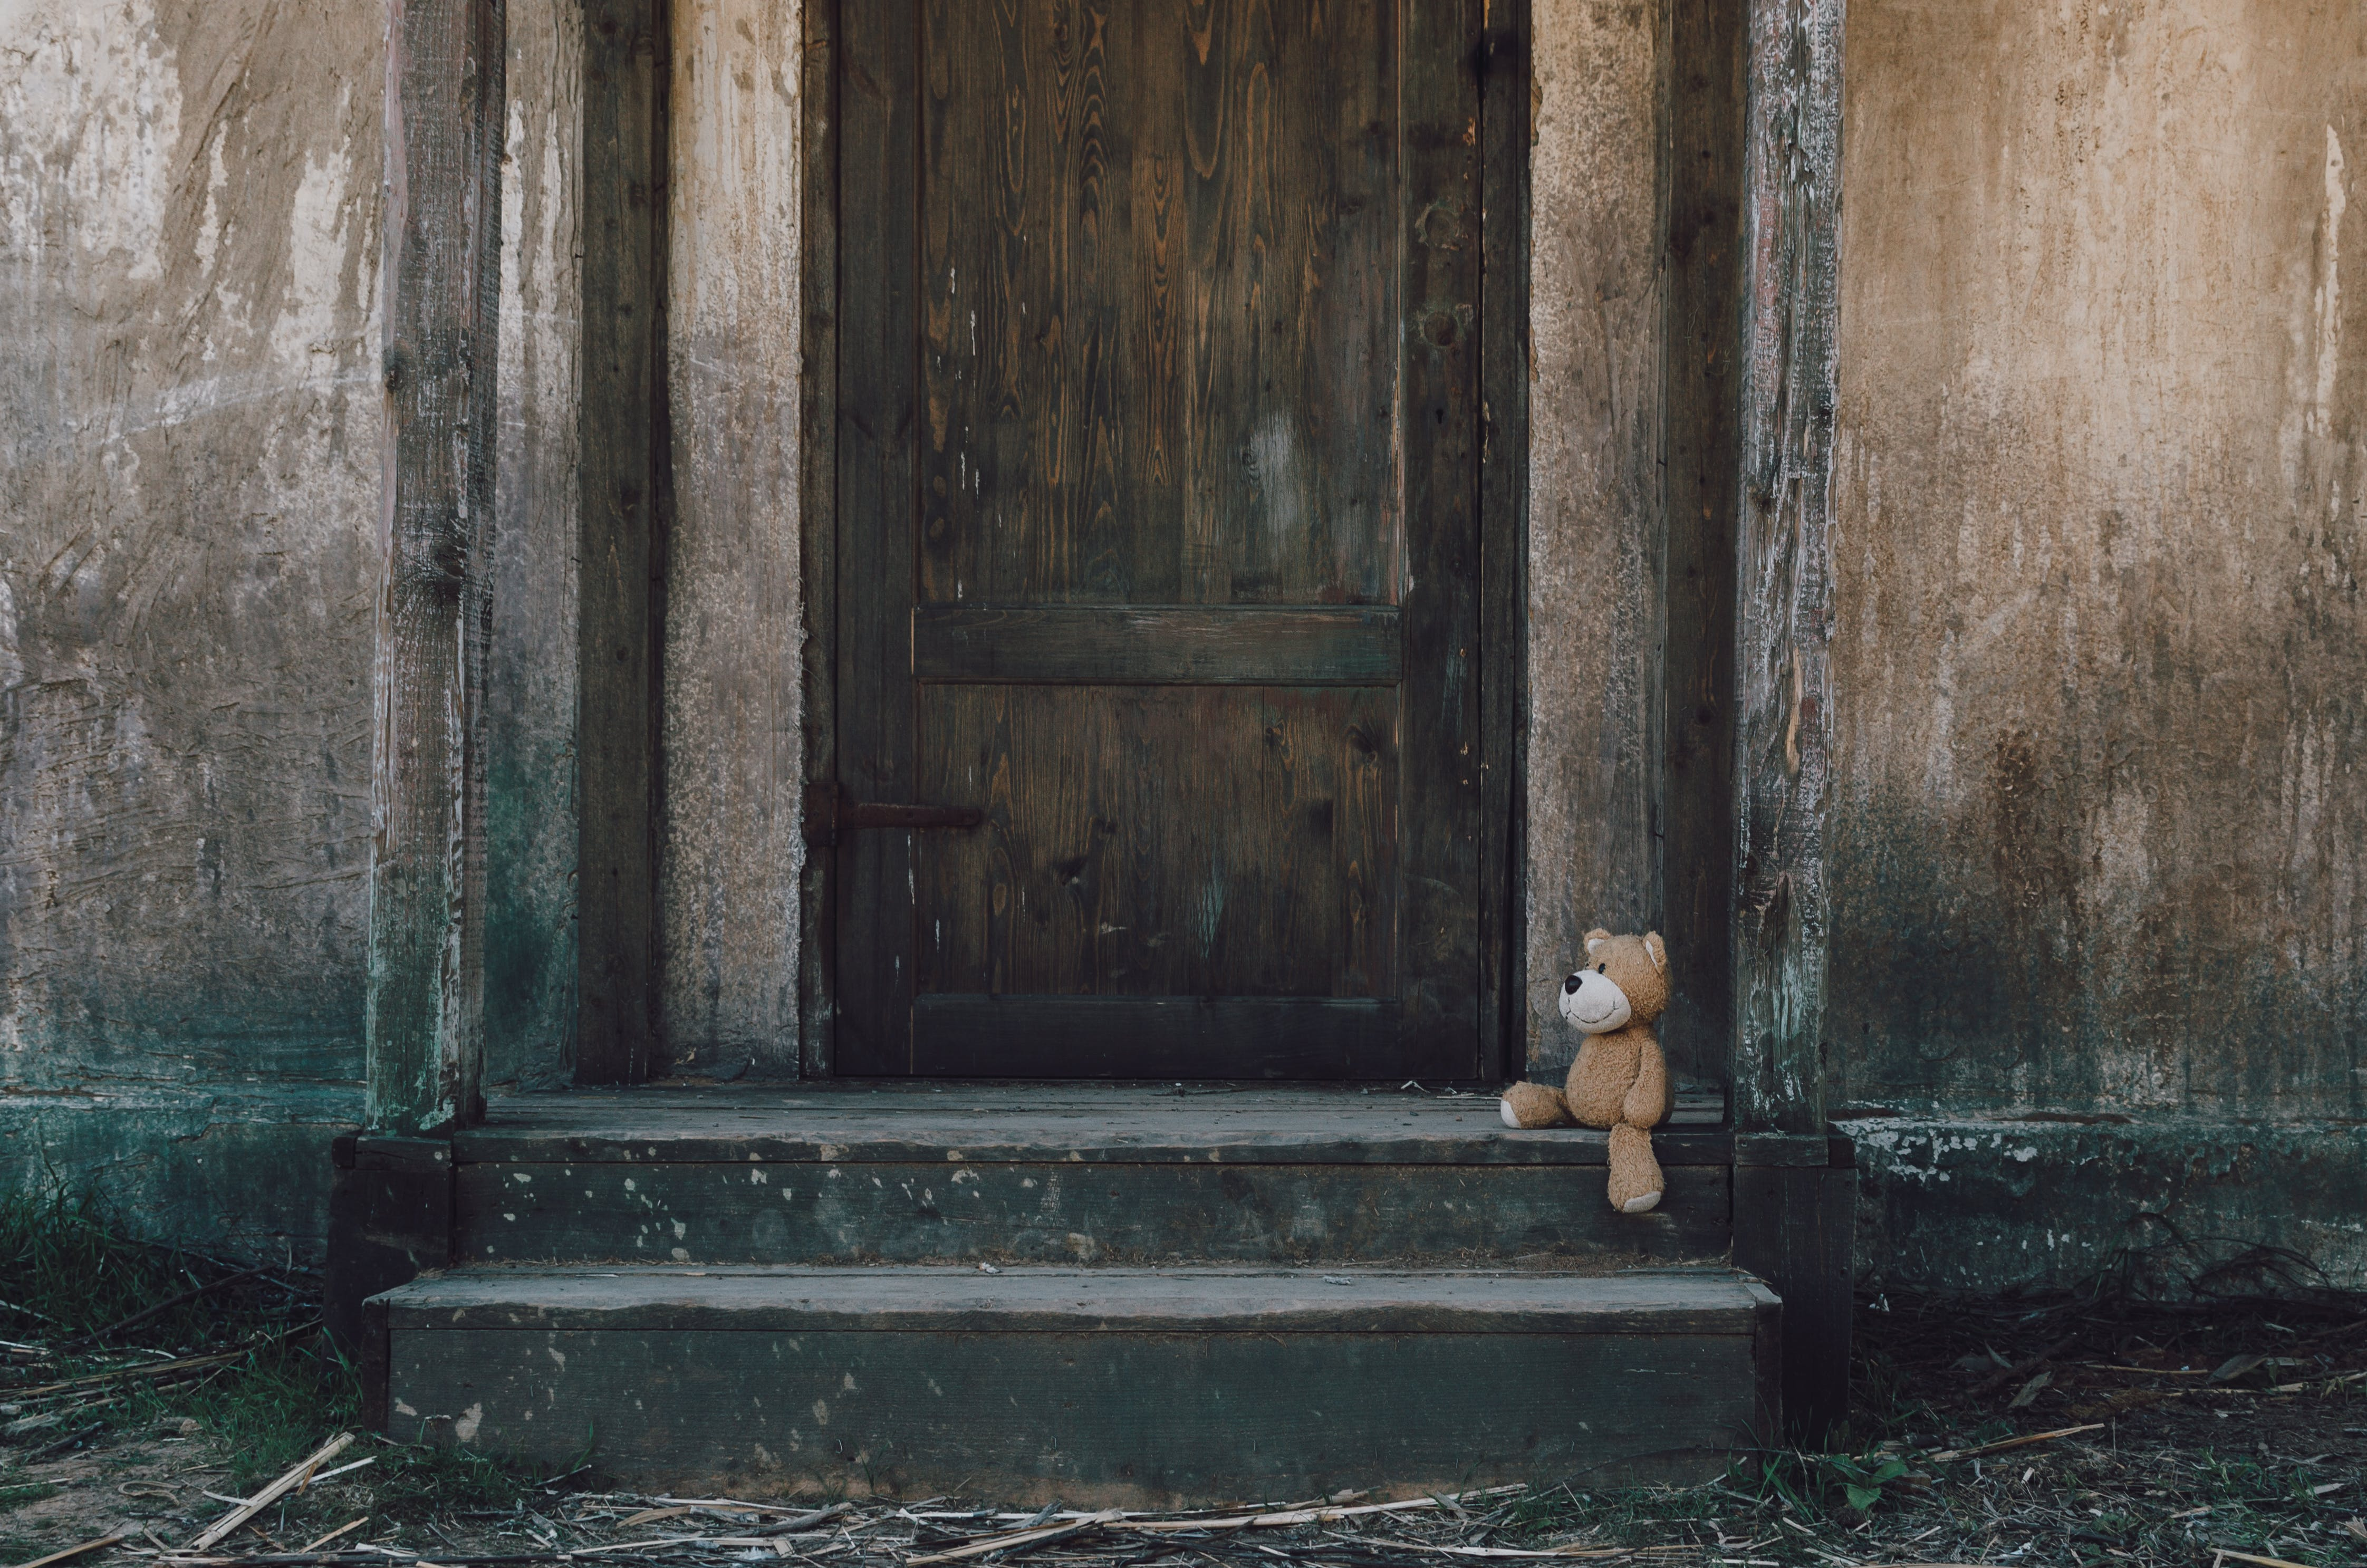 Brown Teddy Bear Near Wooden Door